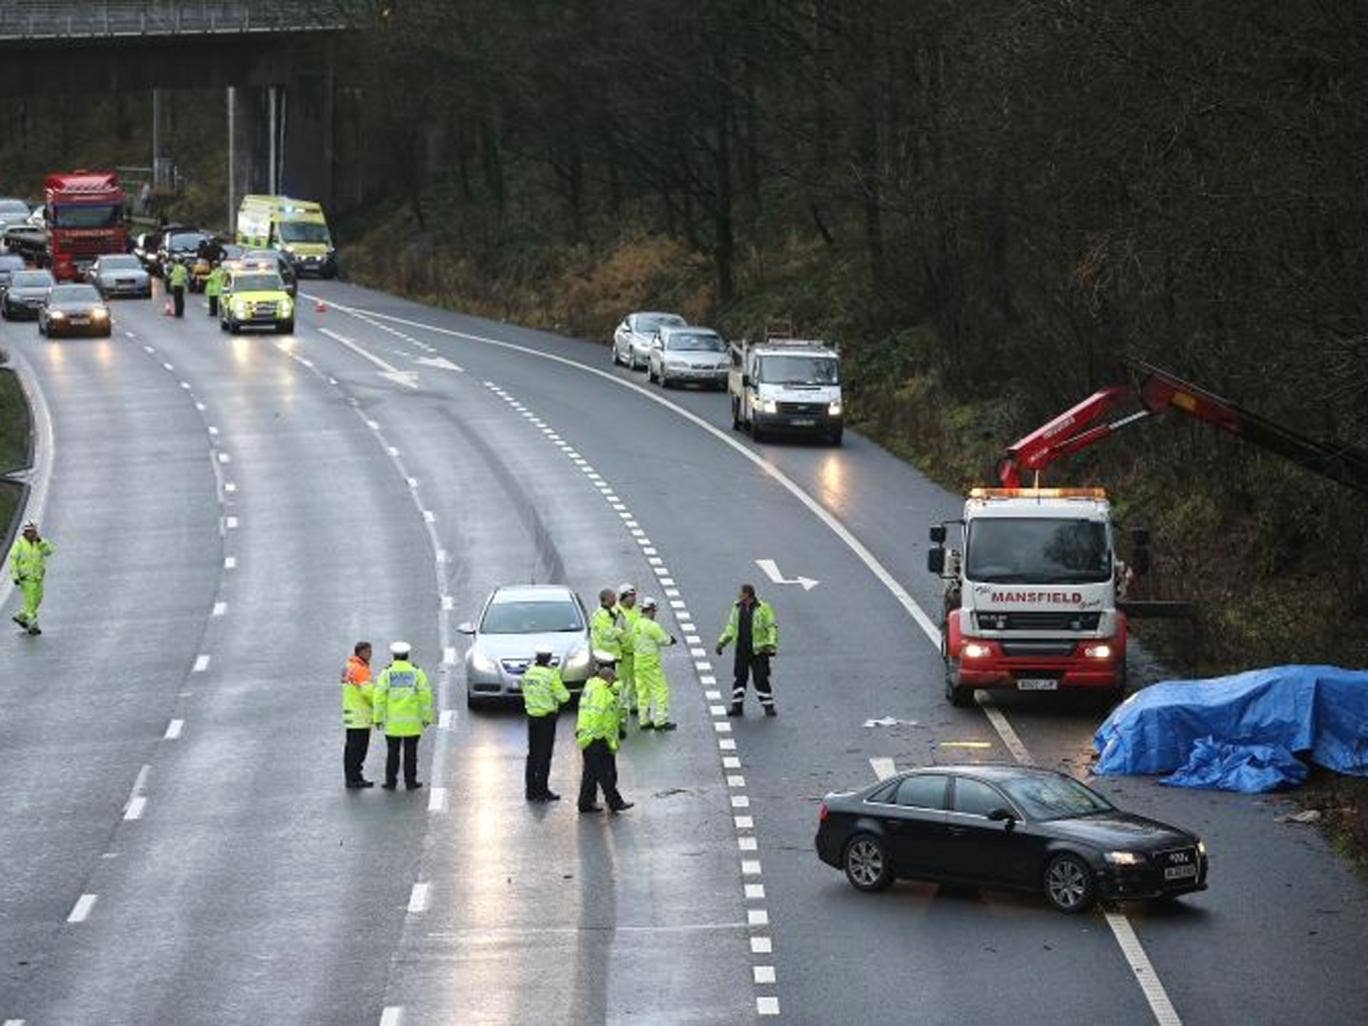 Police and emergency services attend the aftermath of a serious motor accident between Junctions 14 and 15 on the M6 motorway